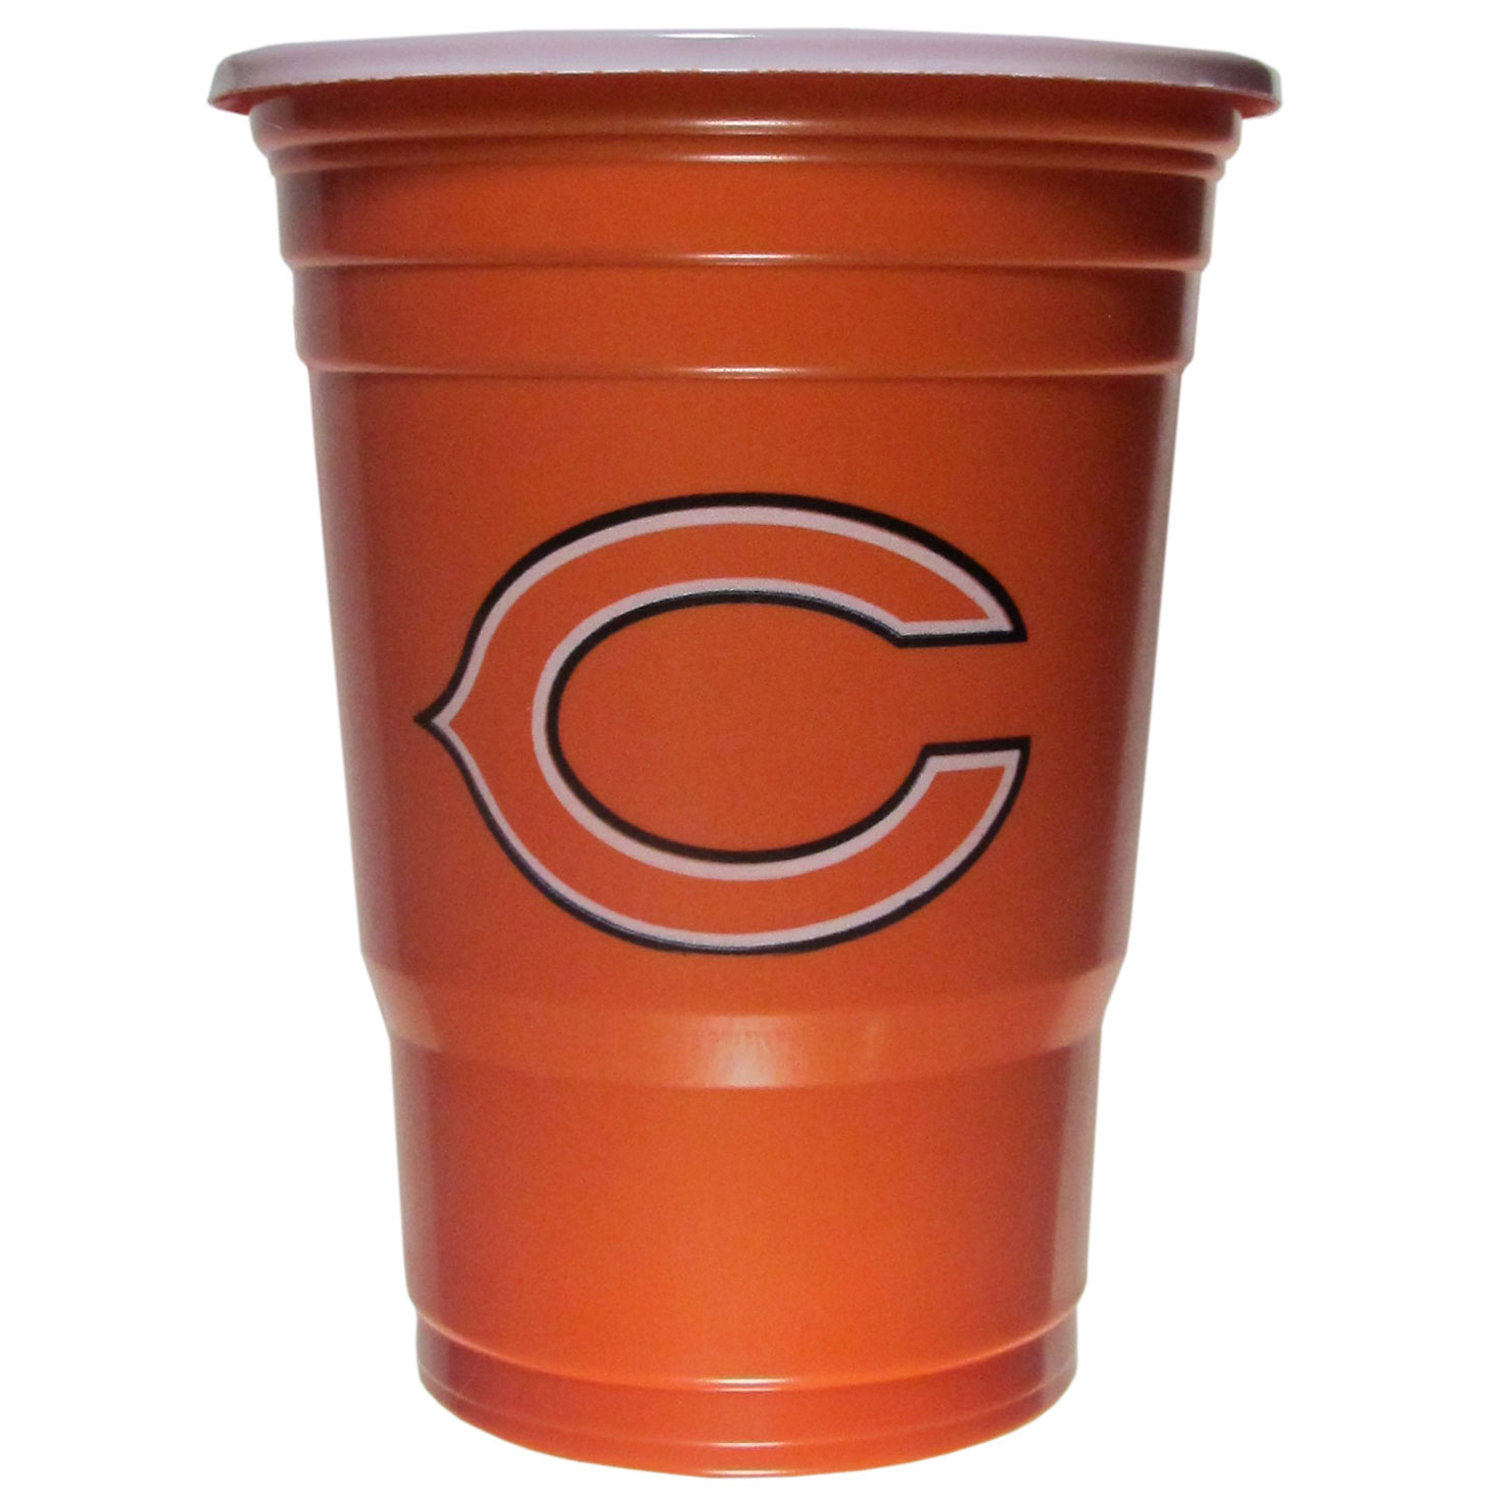 Chicago Bears Plastic Game Day Cups 2 sleeves of 18 (36 Cups) - Our 18 ounce game day cups are what every tailgating or backyard events needs! The cups feature a big Chicago Bears logo so you can show off your team pride. The popular 18 ounce size is perfect for drinks or ping pong balls! 2 sleeves of 18 cups, 36 cups in total.